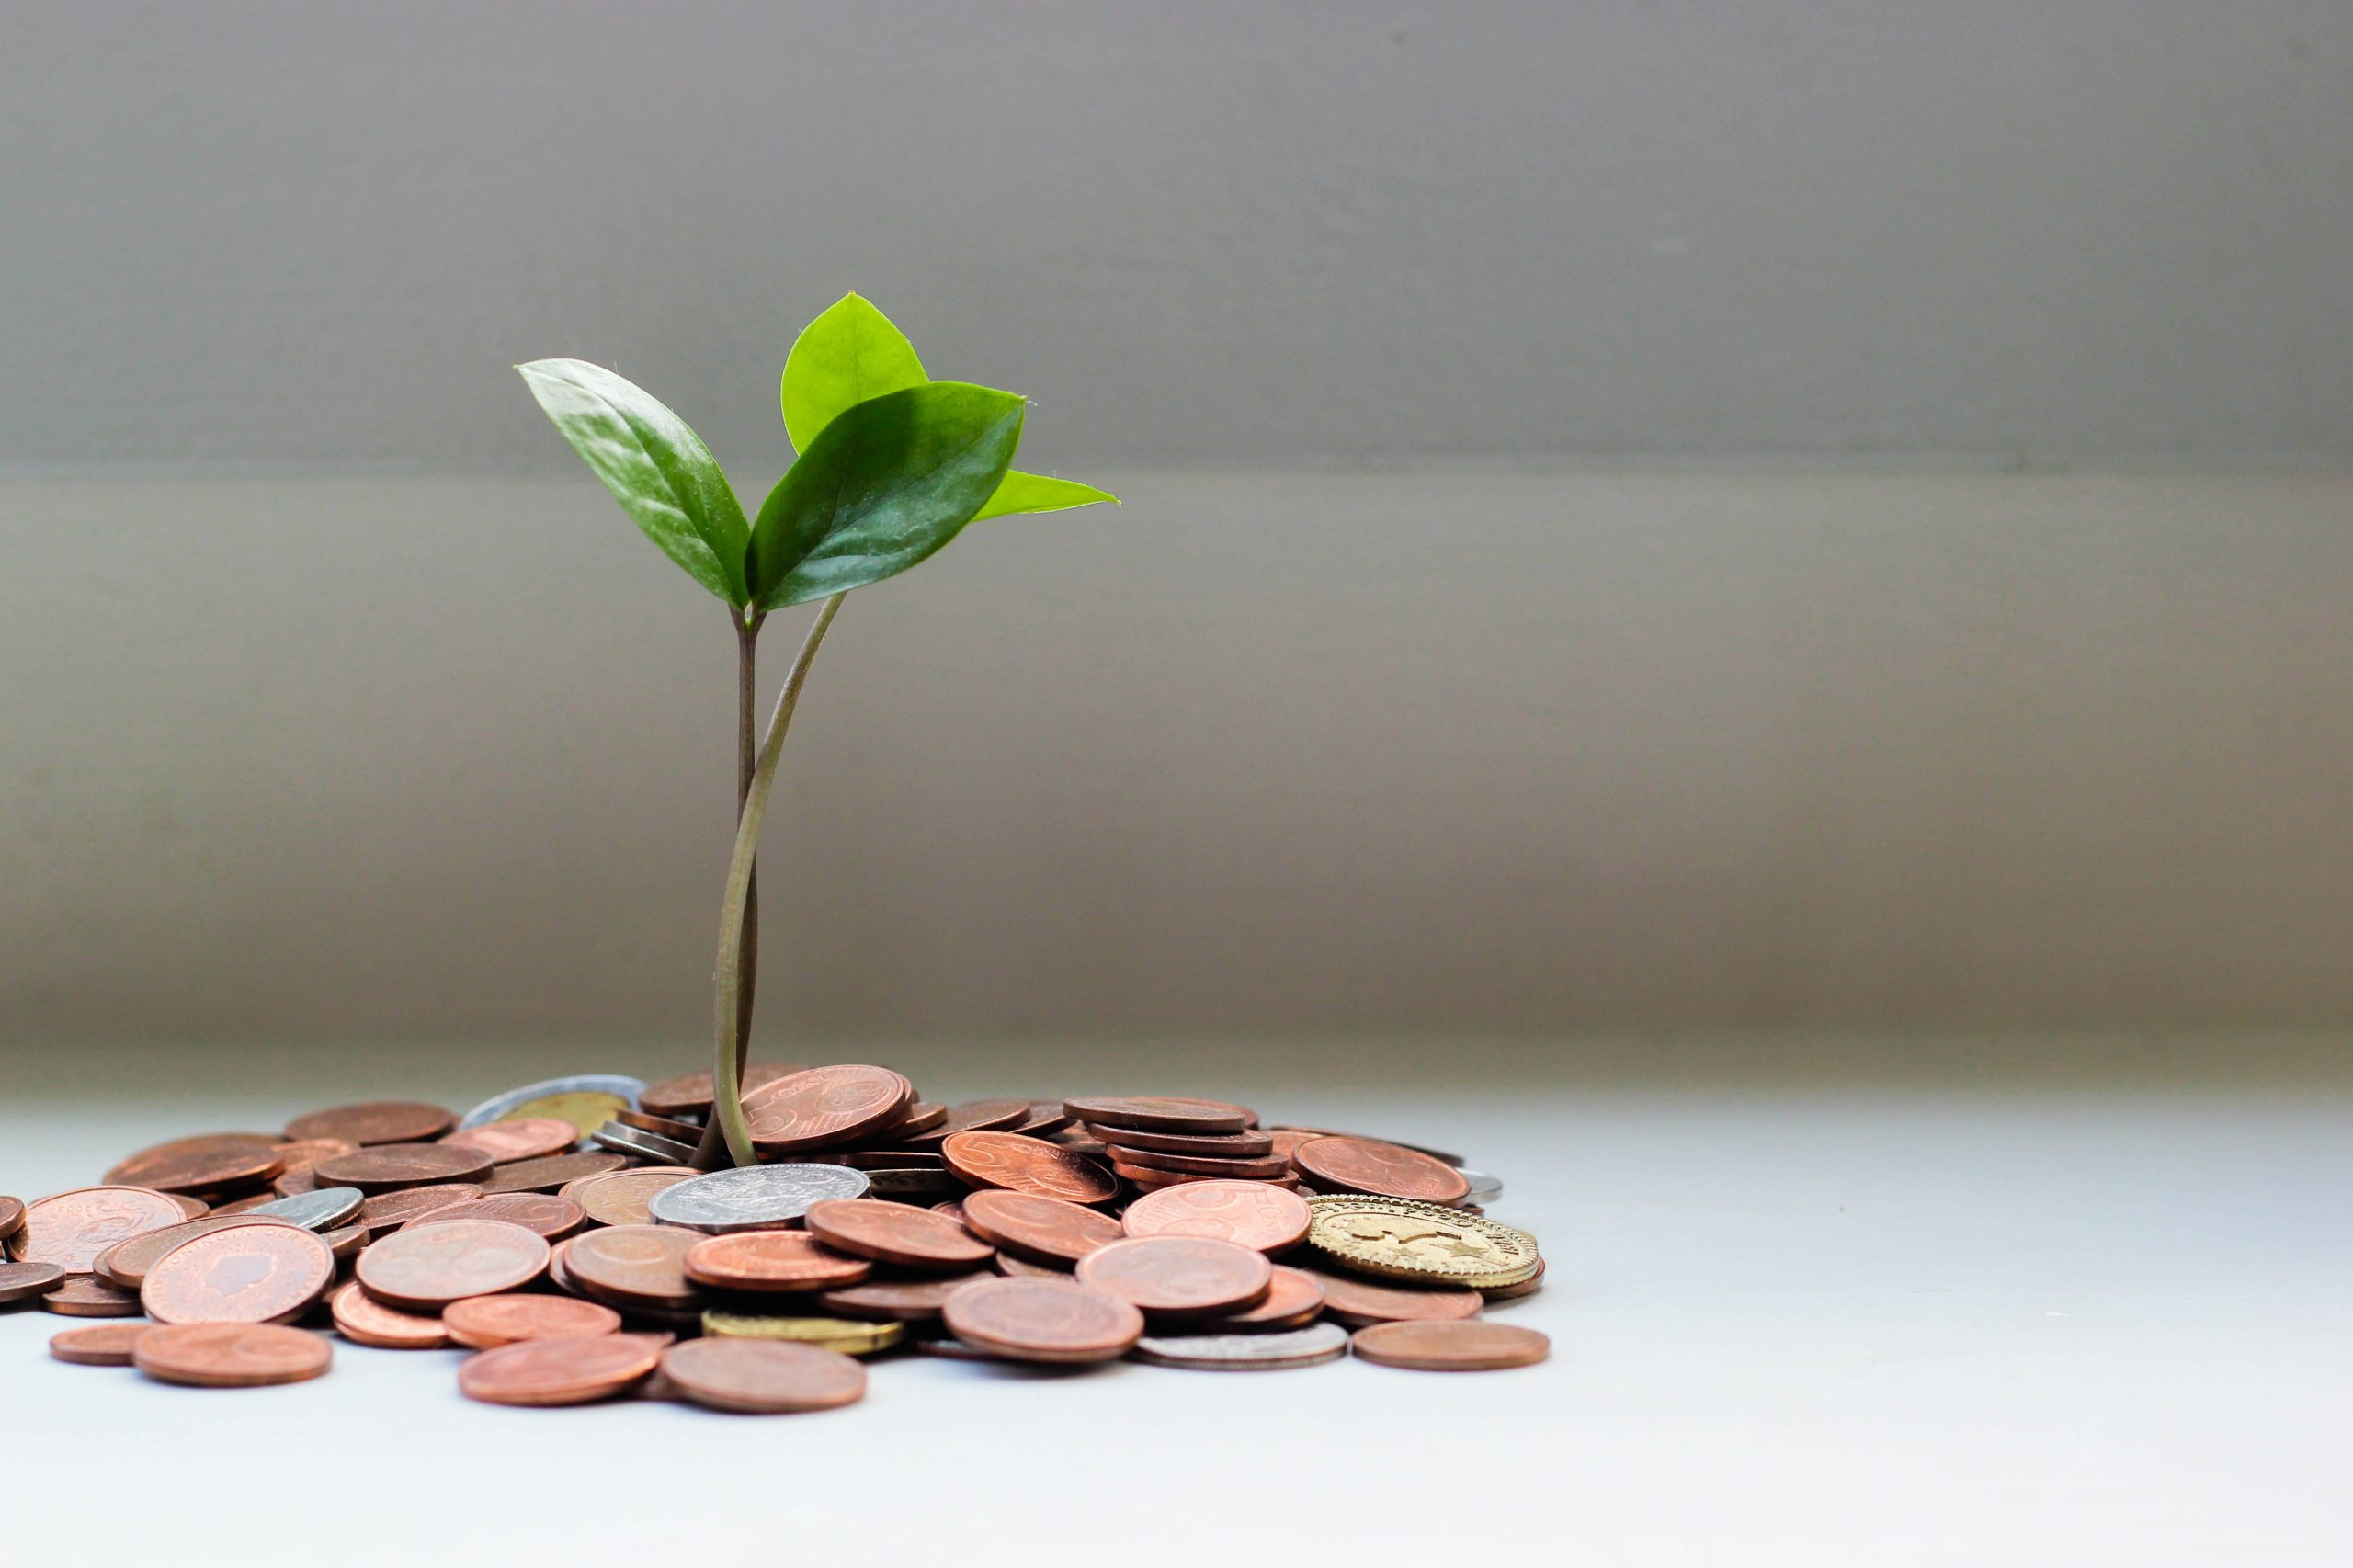 A small plant sprouts from a pile of coins.